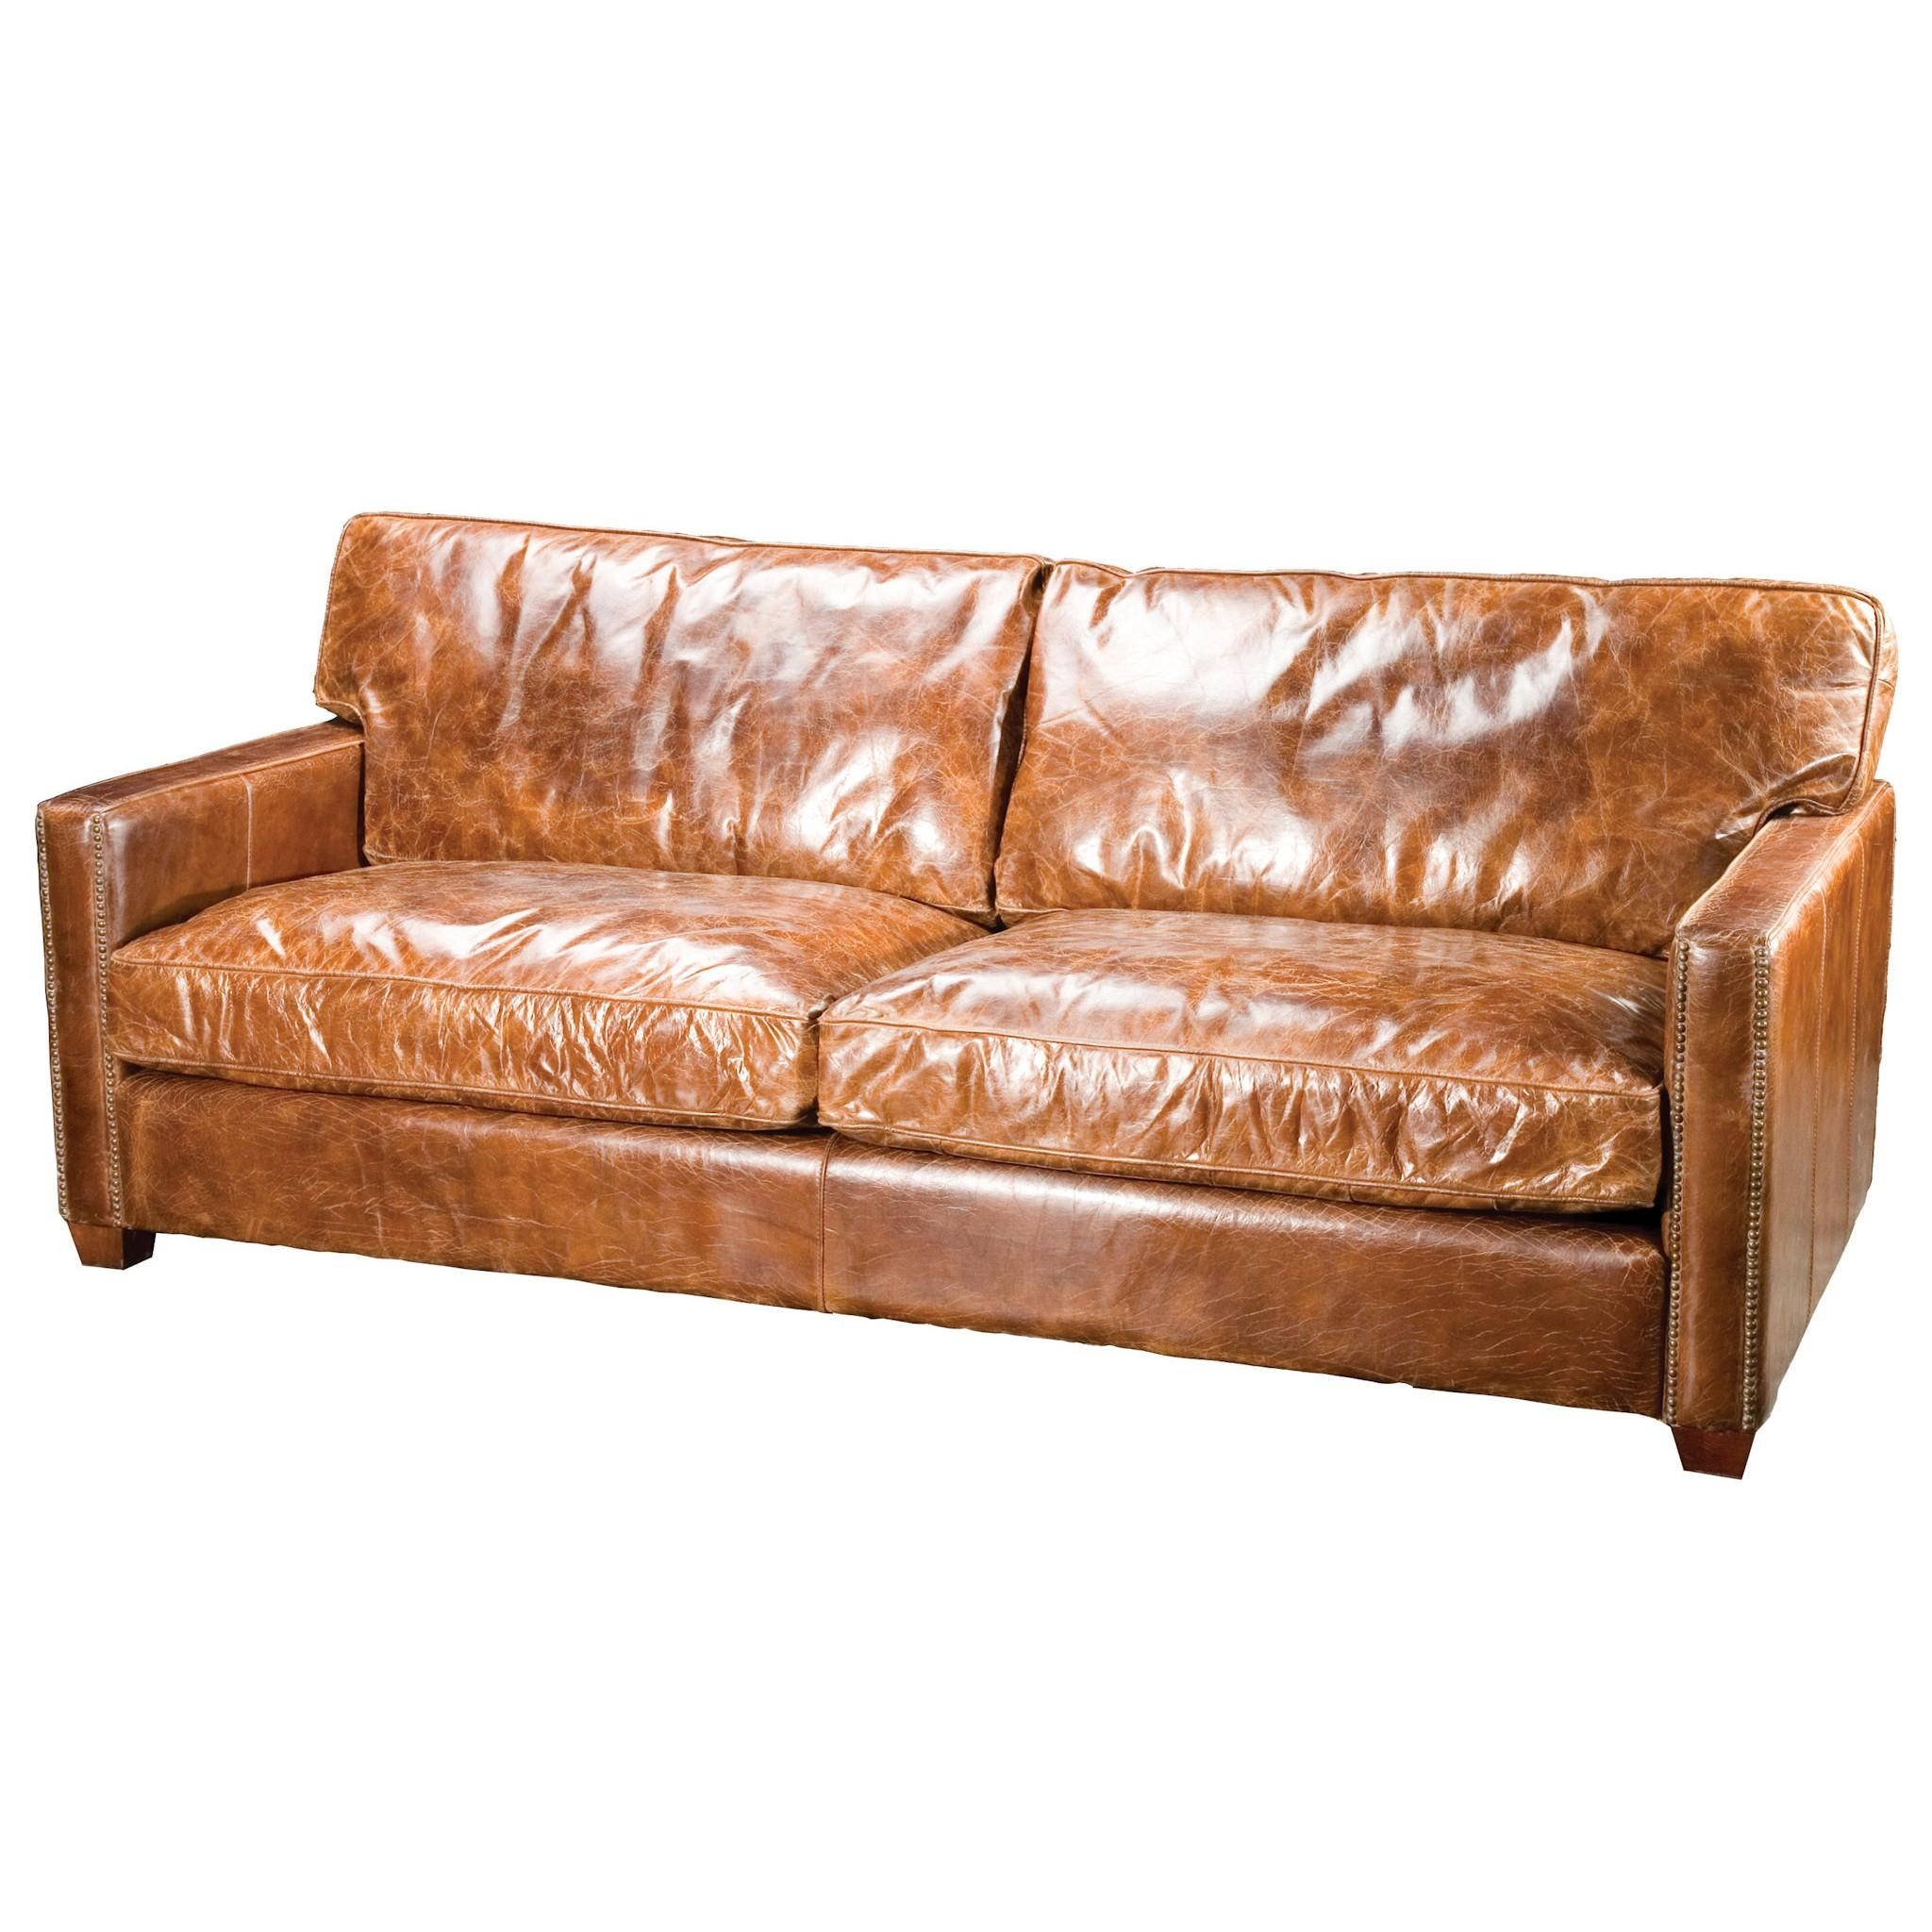 Sofas Center : Sofas Center Couch Covers For Thomasville Within Thomasville Leather Sectionals (Image 15 of 20)